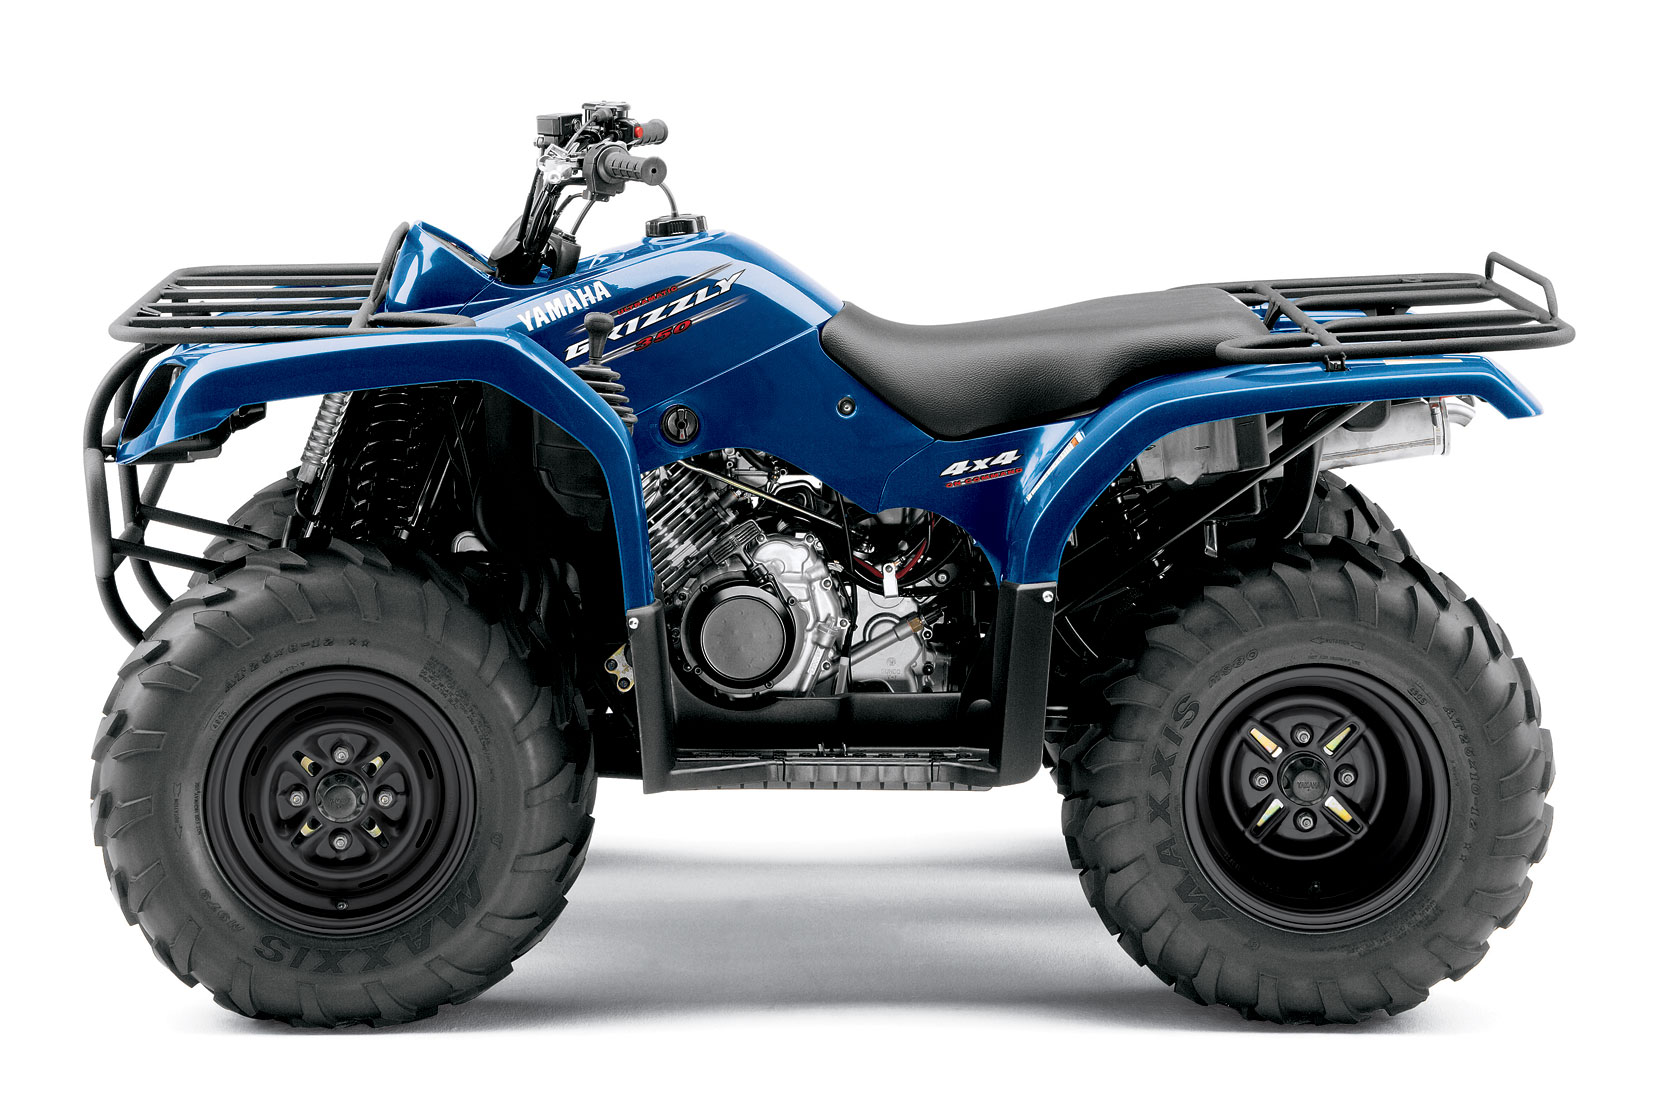 Yamaha Grizzly Oil Capacity